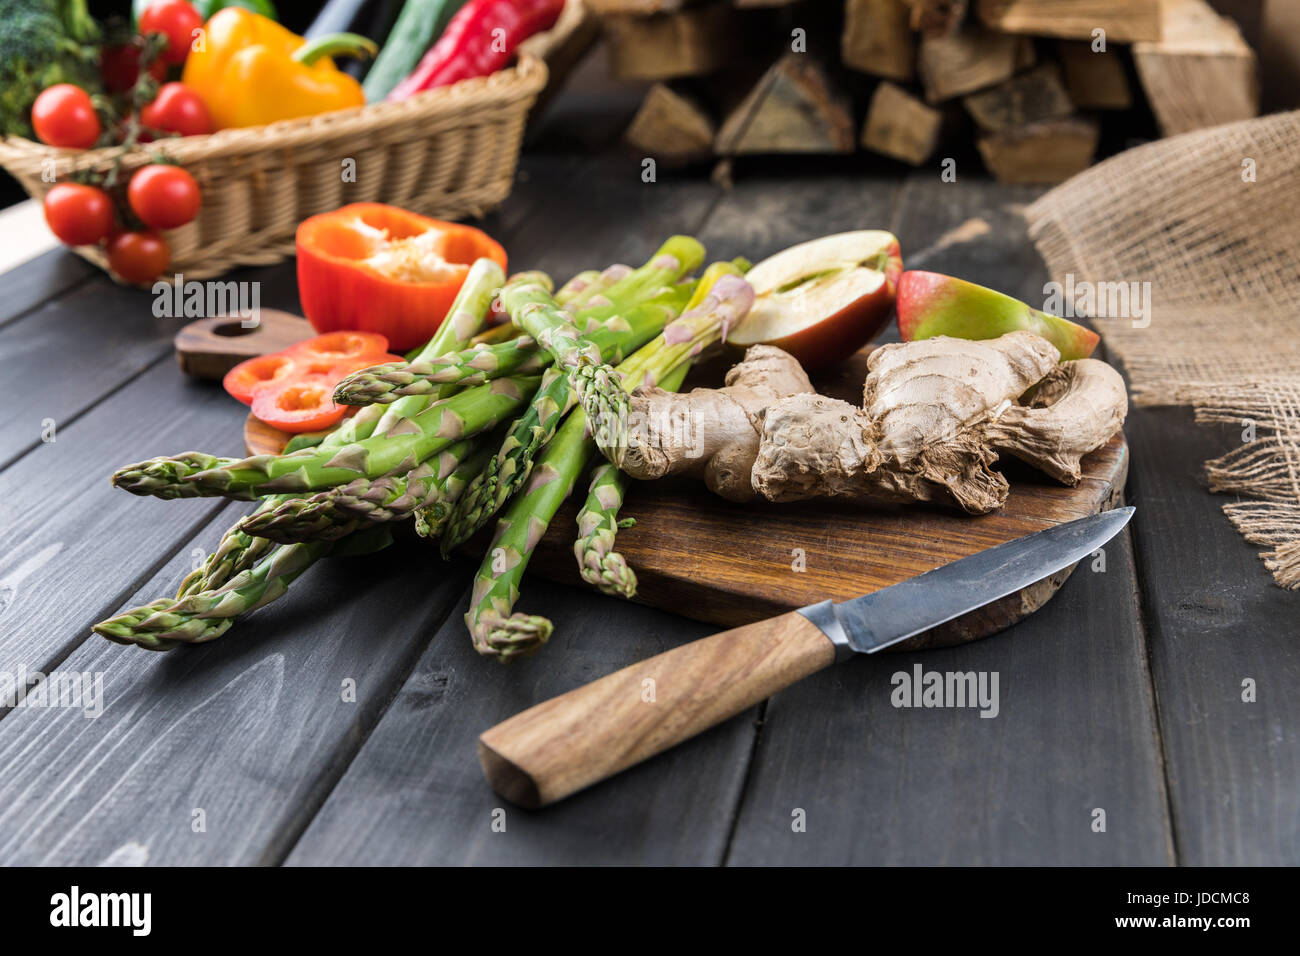 Close-up view of fresh seasonal vegetables and halved apple on wooden table top Stock Photo